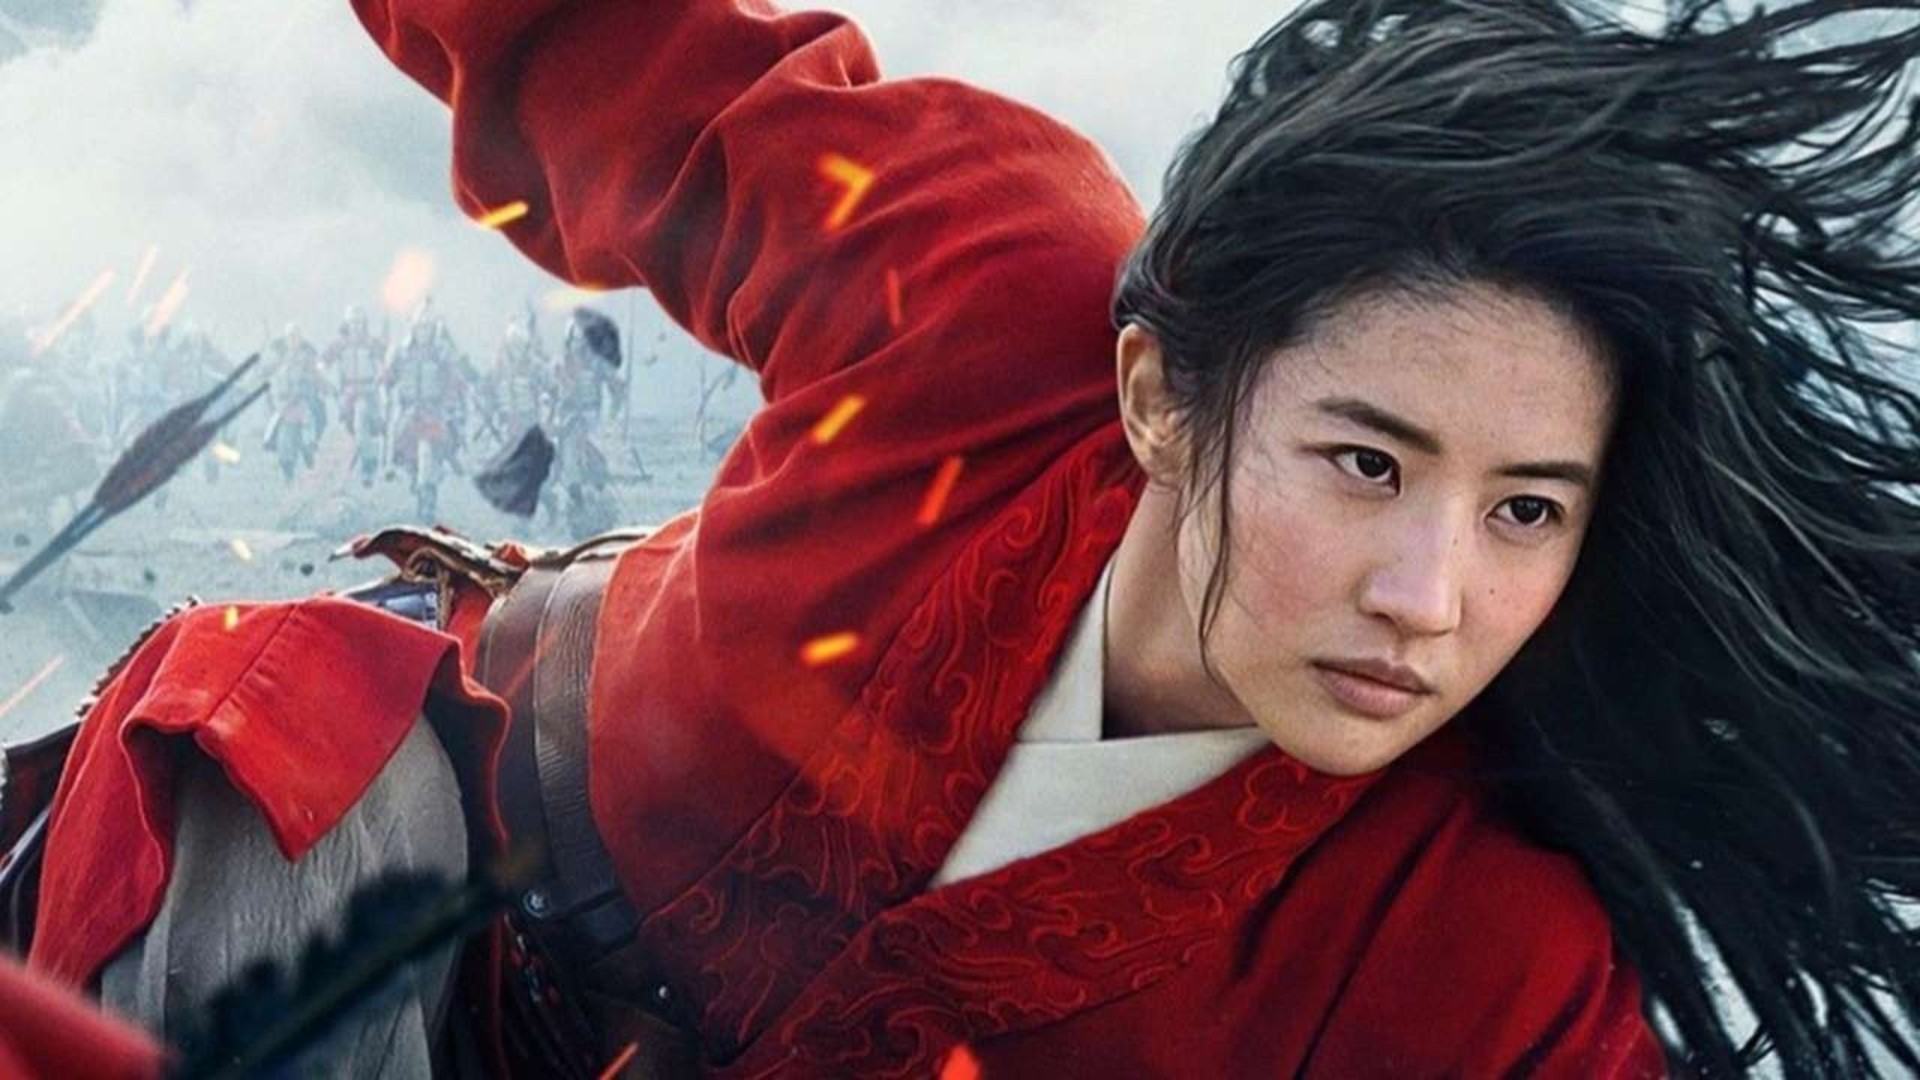 Turning A Scathing Mulan Review Into An Education